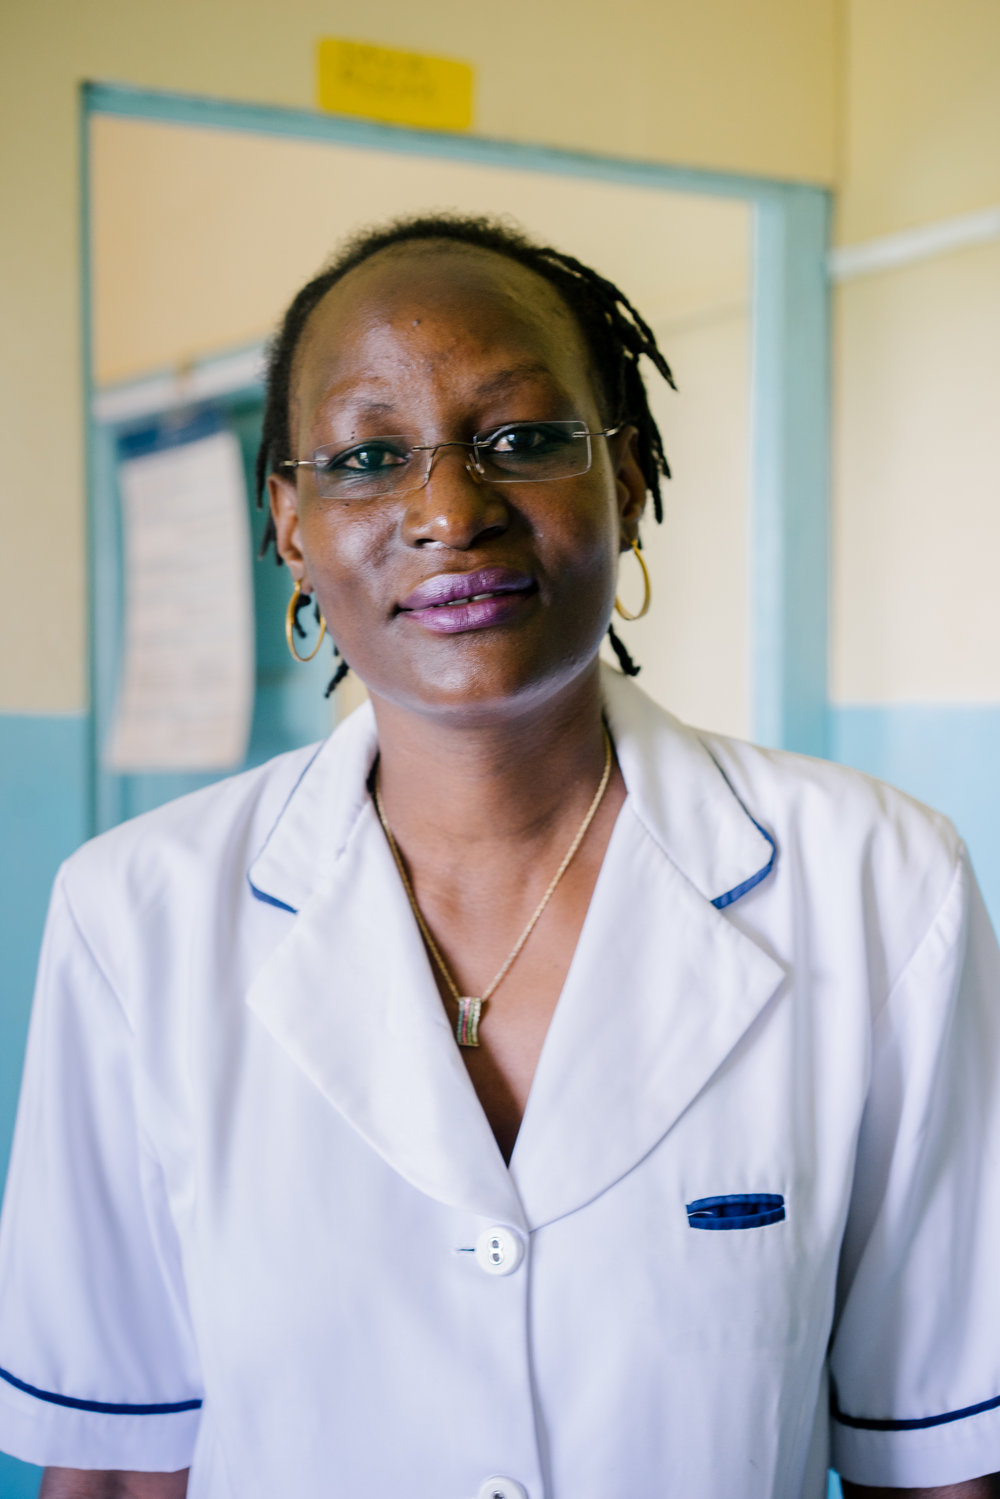 Ruth Owino poses for a portrait. She says despite the law, if a girl or woman comes to her asking for an abortion, she will not turn them away. Better to have a safe procedure than risk injury or death at the hands of a quack.